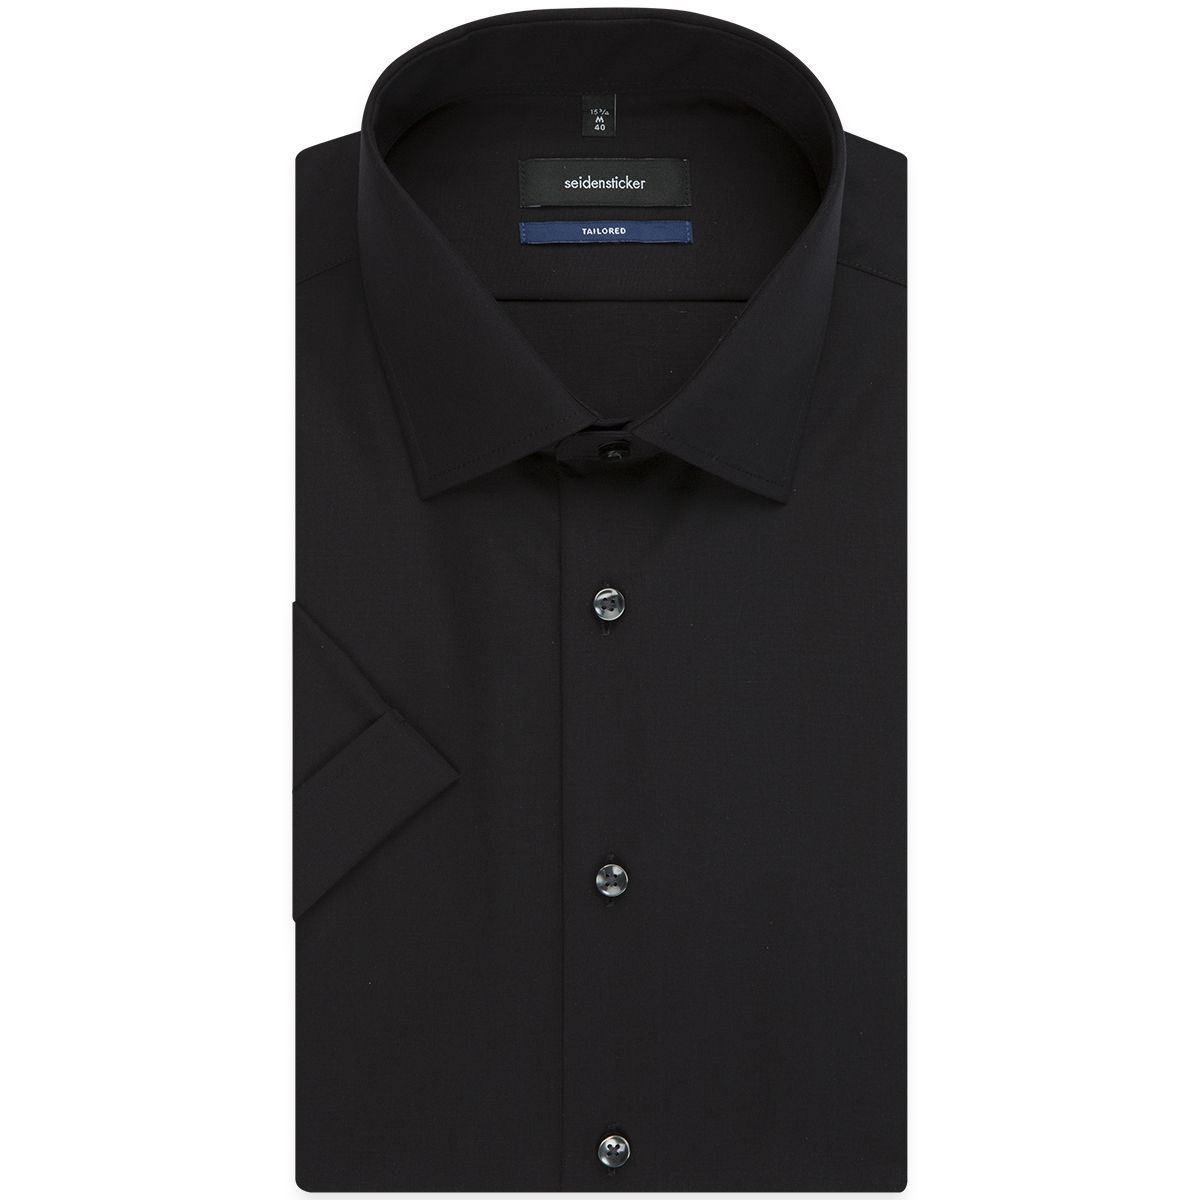 Chemisette TAILORED noire col français